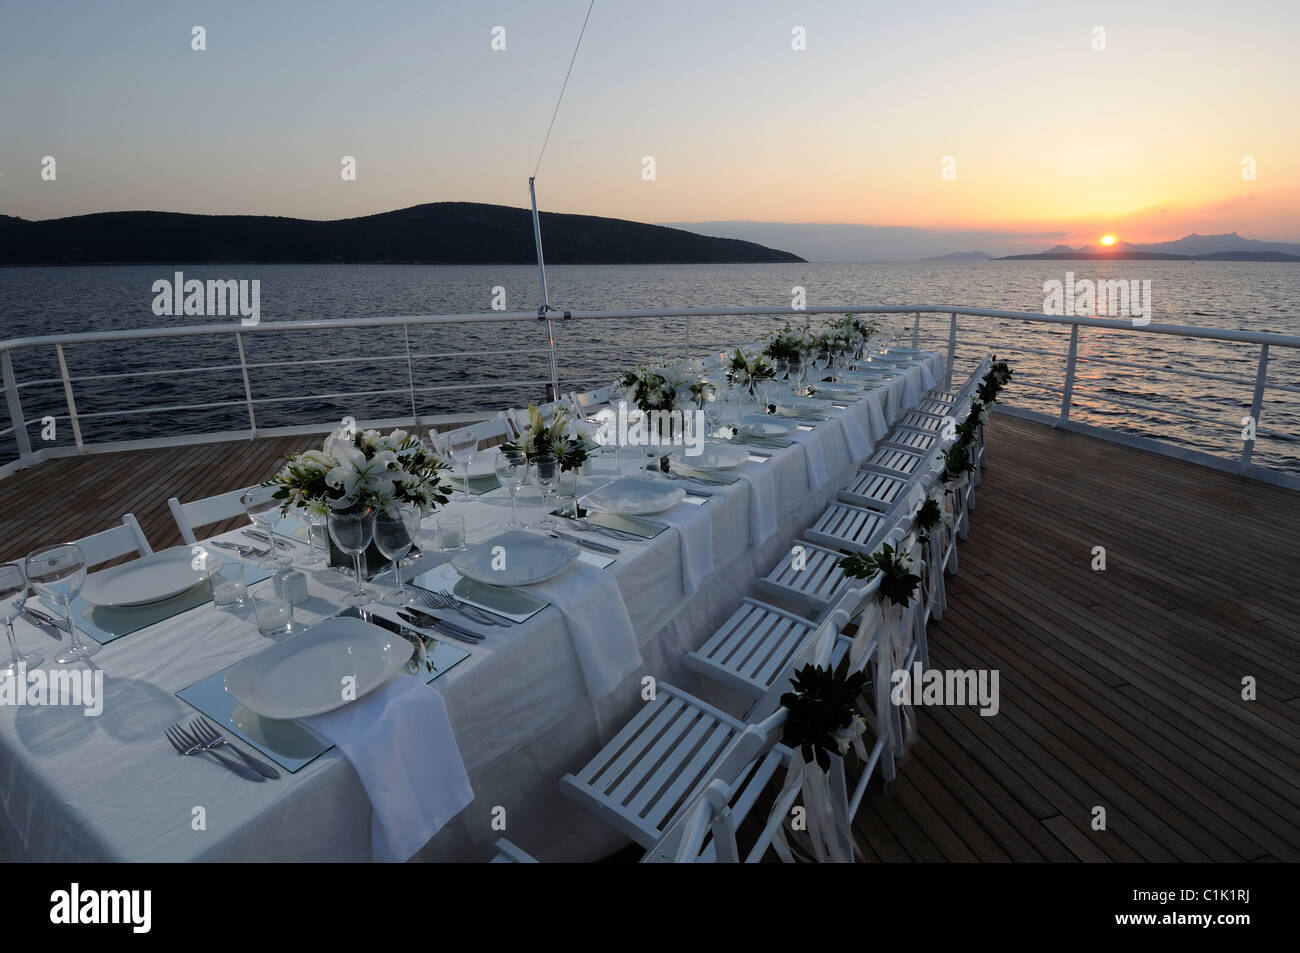 wedding party table on the deck of luxury cruise ship